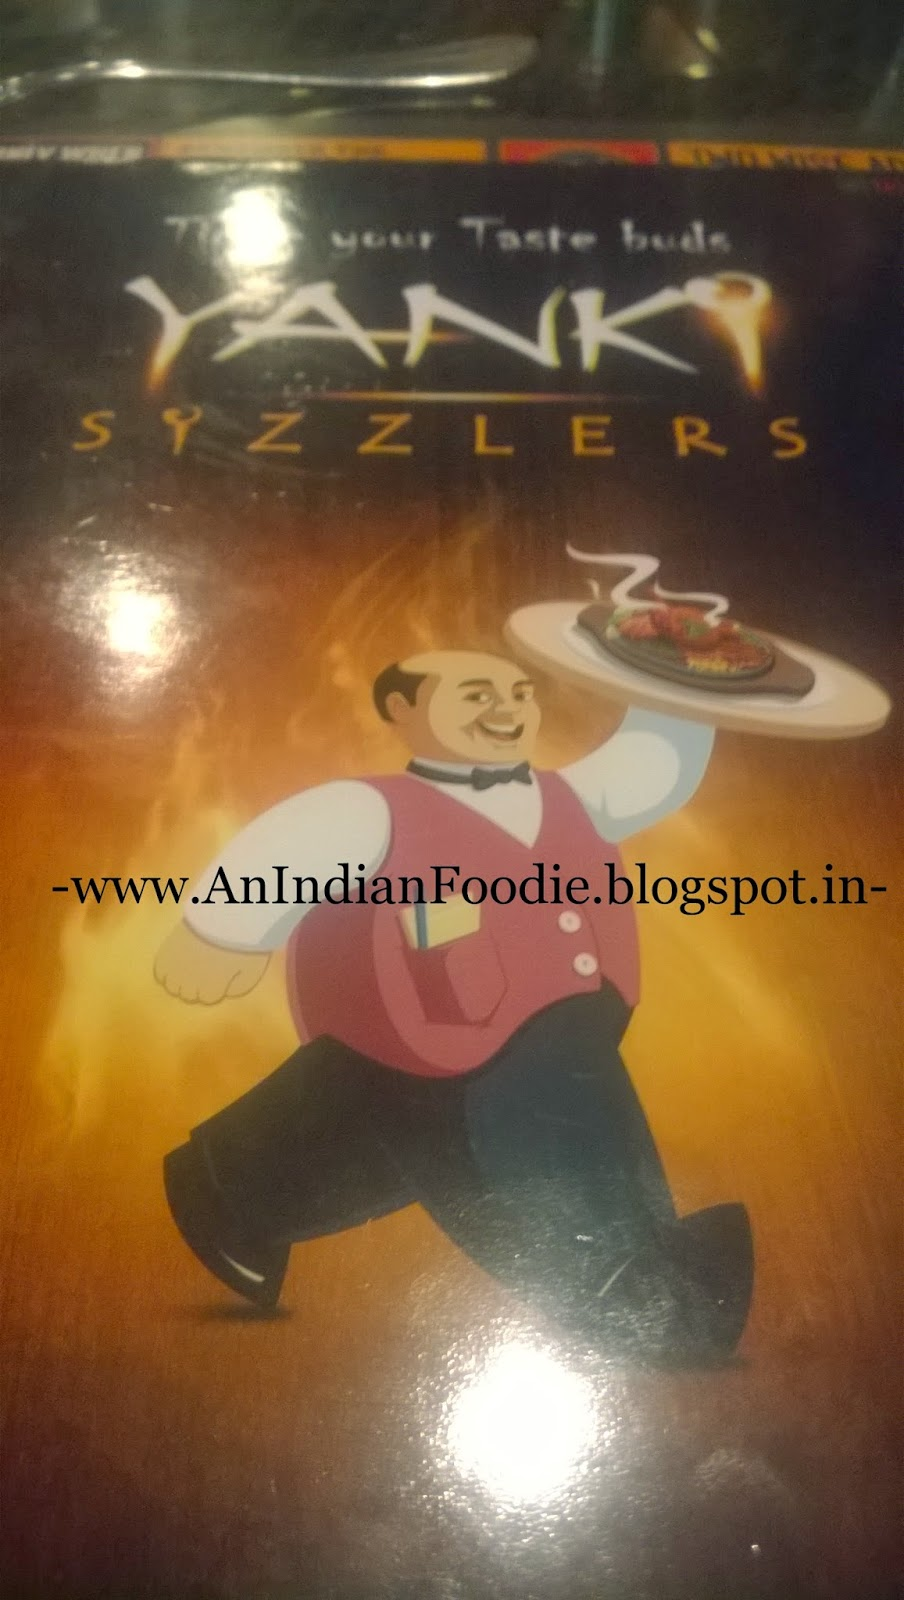 An indian foodie : yanki sizzlers, a good competition to sizzler ...